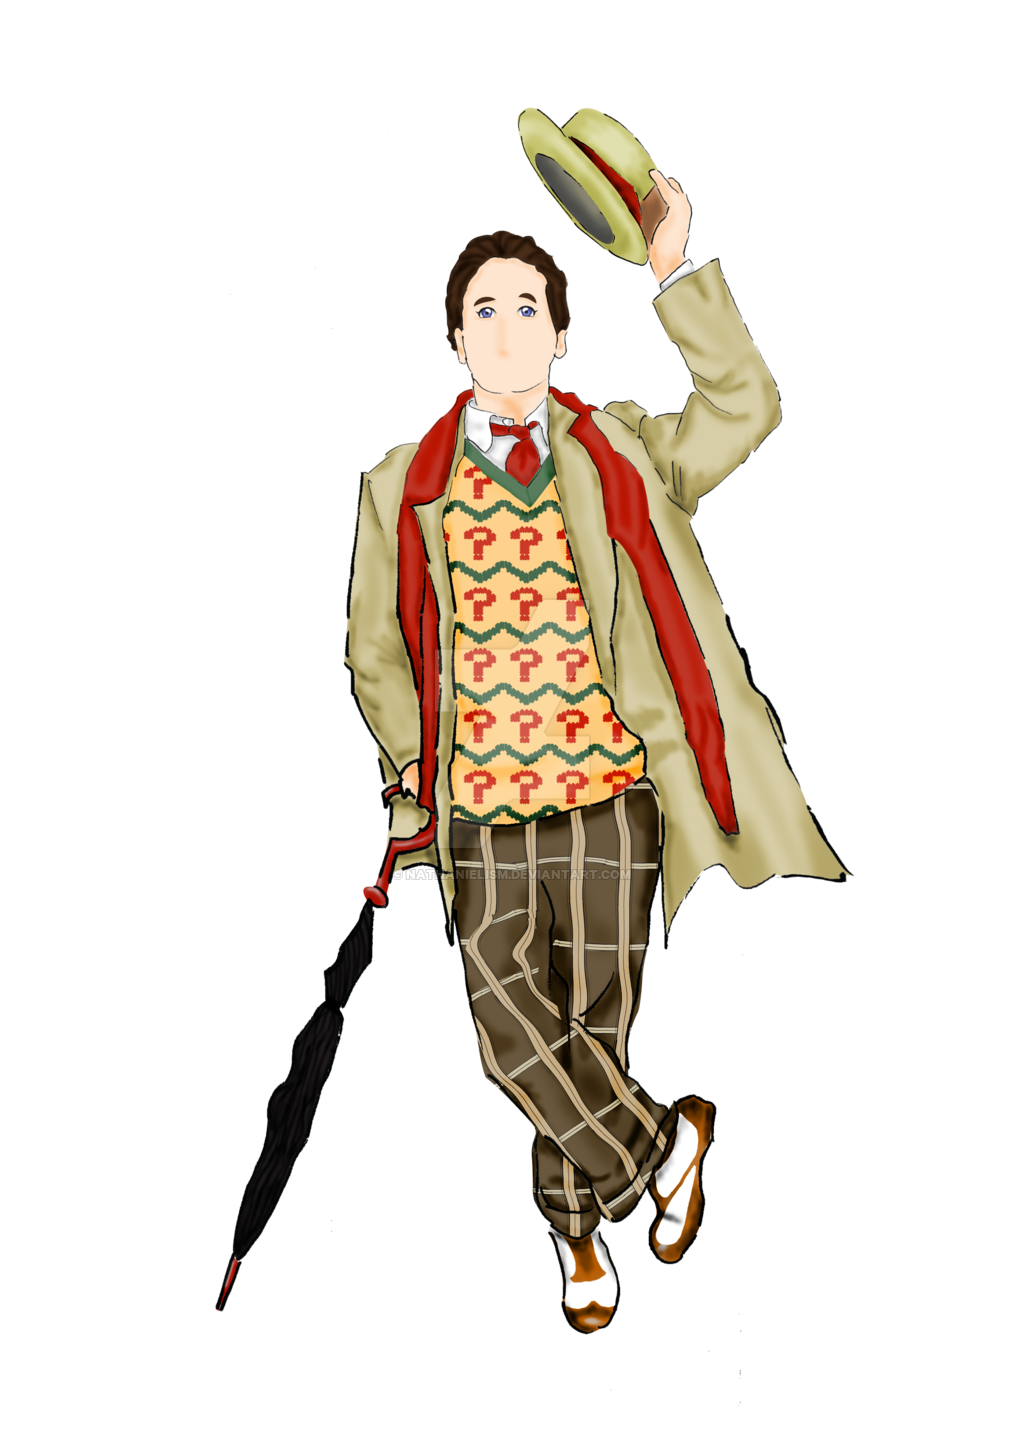 Doctor who fan art png. Seventh illustration by nathanielism